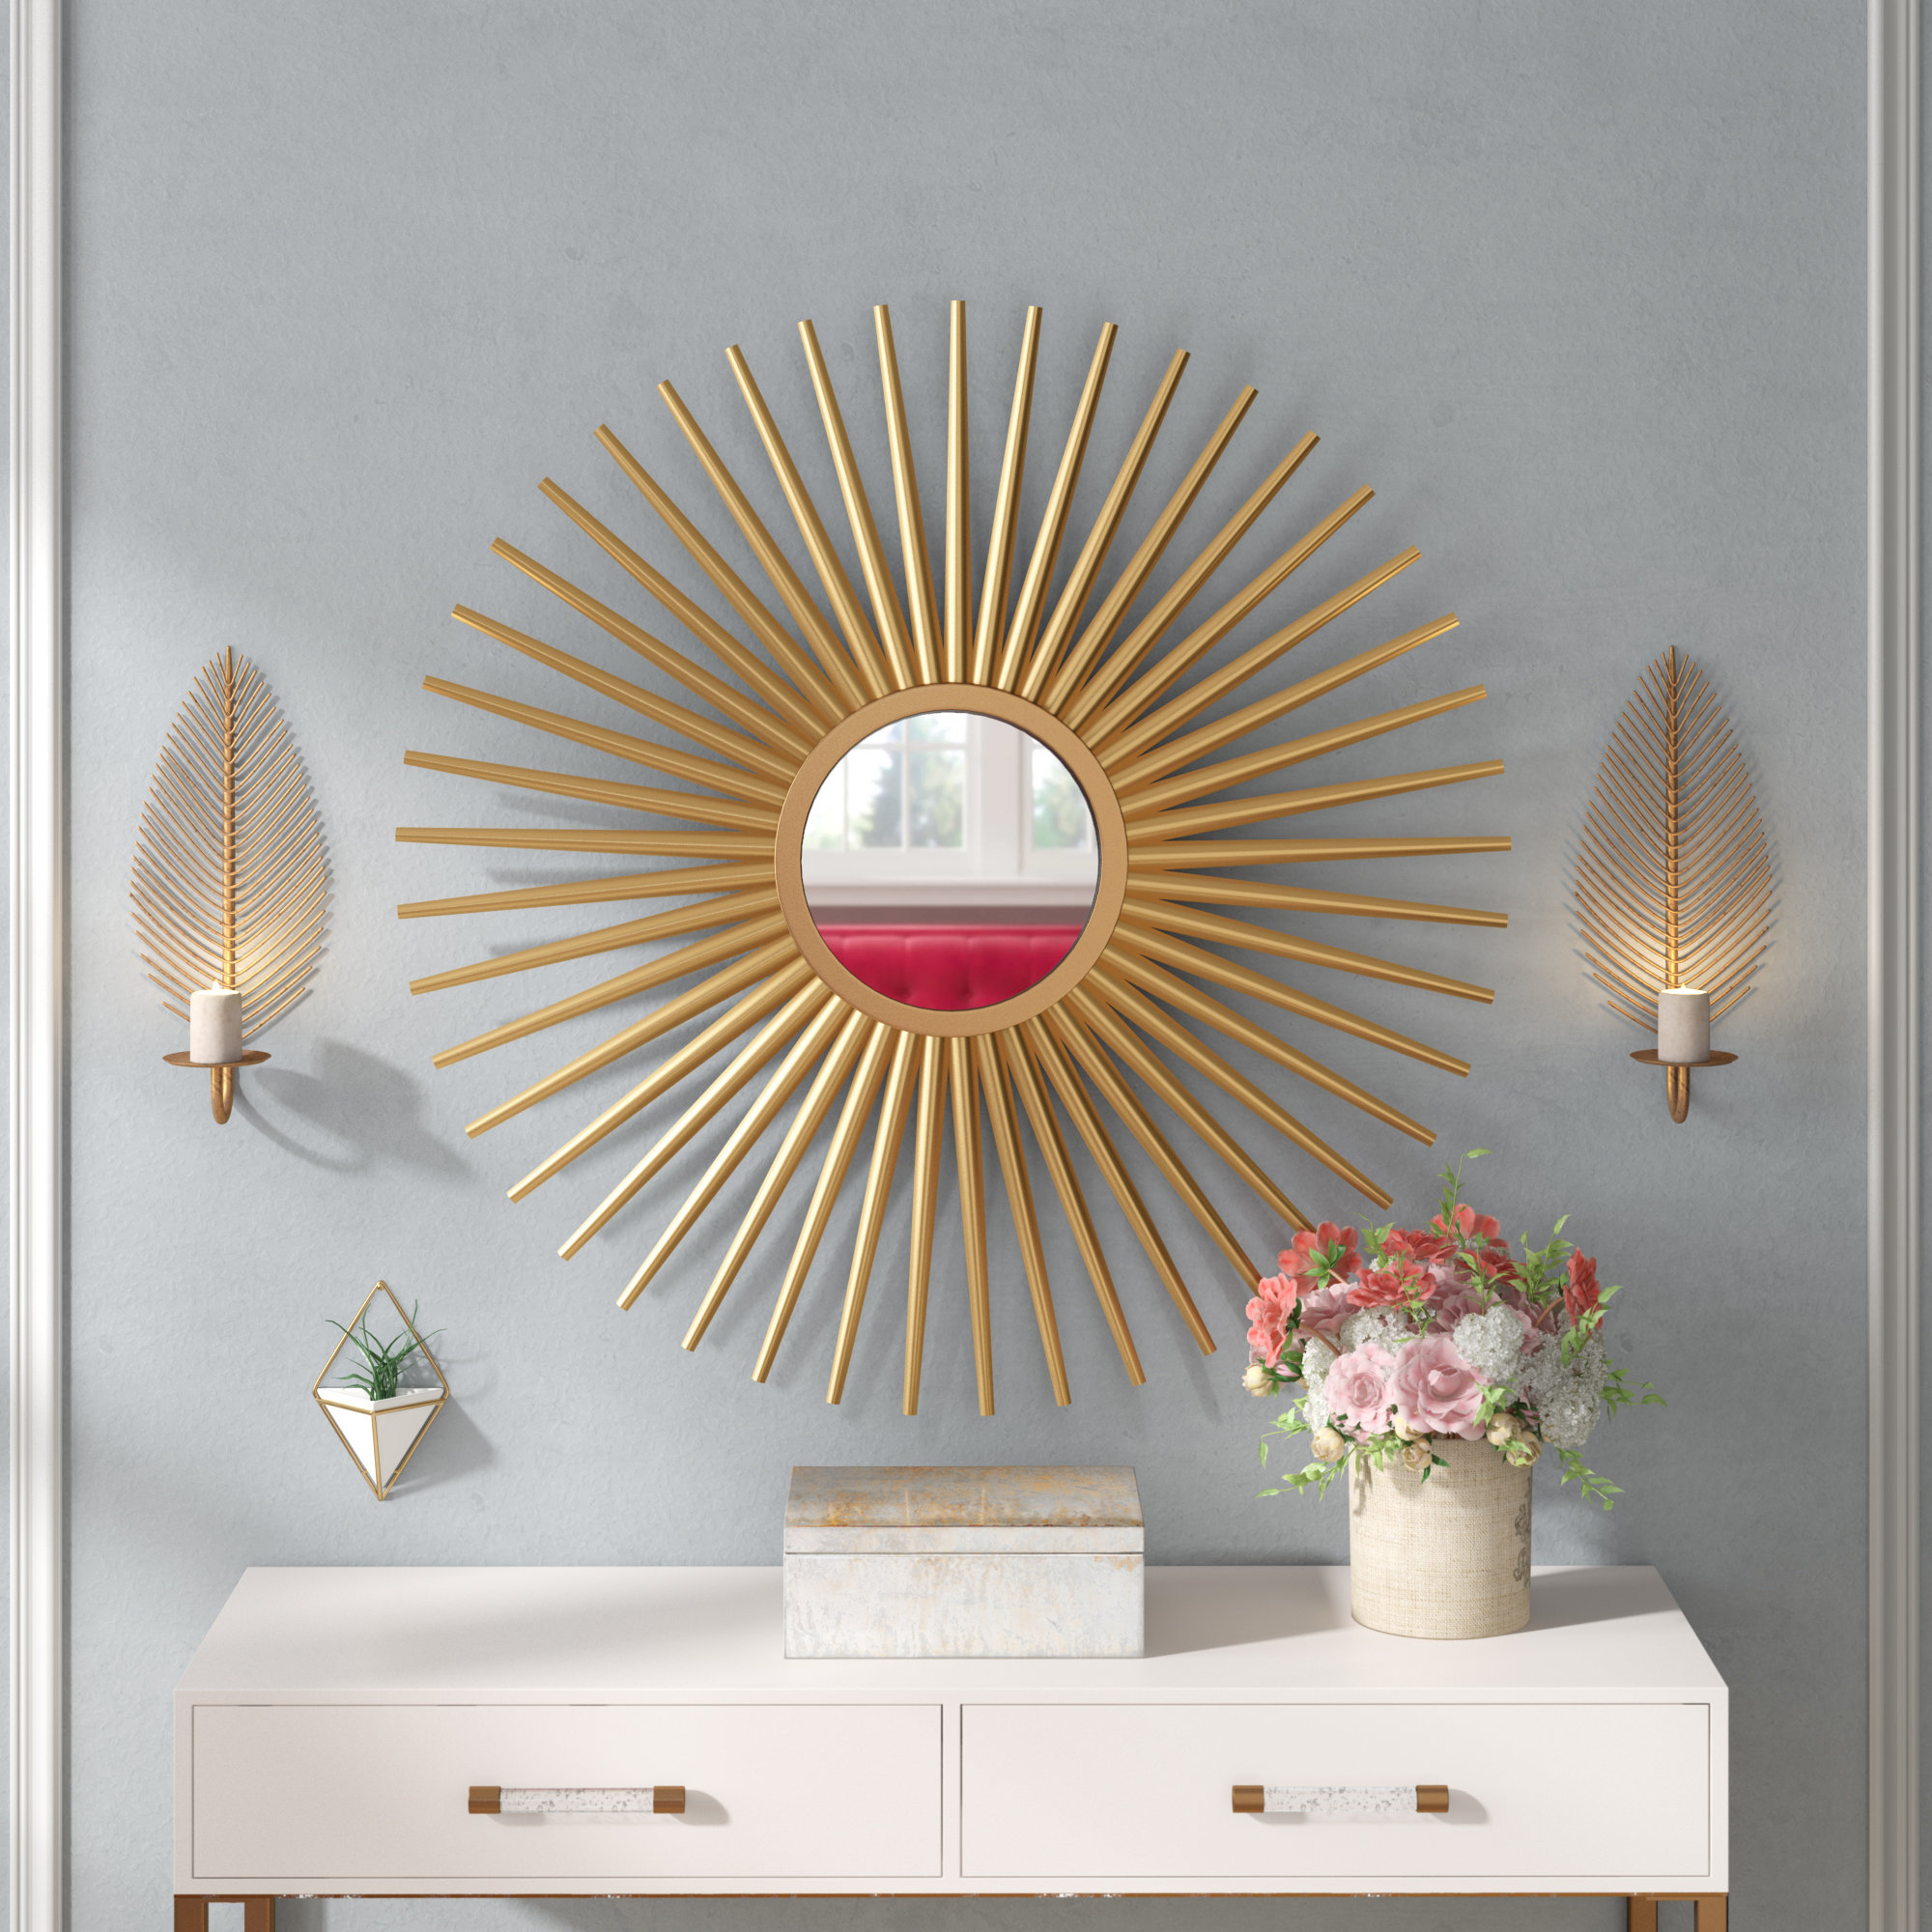 Sunburst Wall Mirror Intended For Starburst Wall Decor By Willa Arlo Interiors (View 6 of 30)